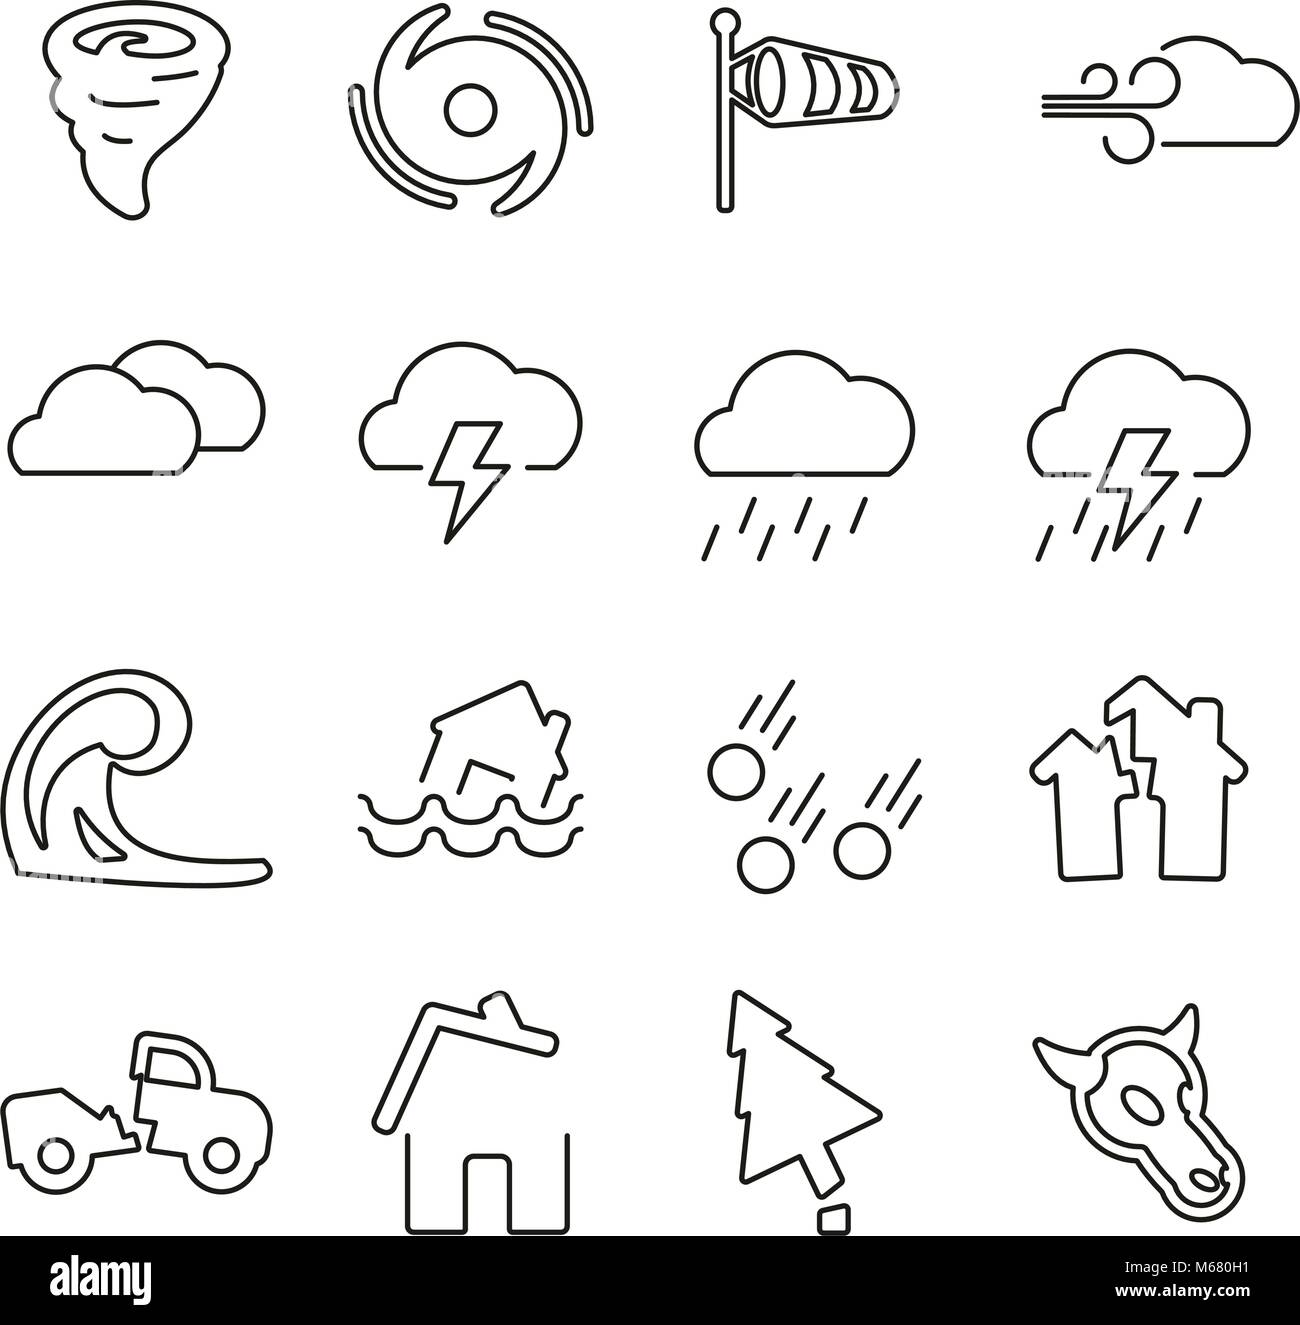 Tornado or Hurricane or Storm Icons Thin Line Vector Illustration Set - Stock Vector